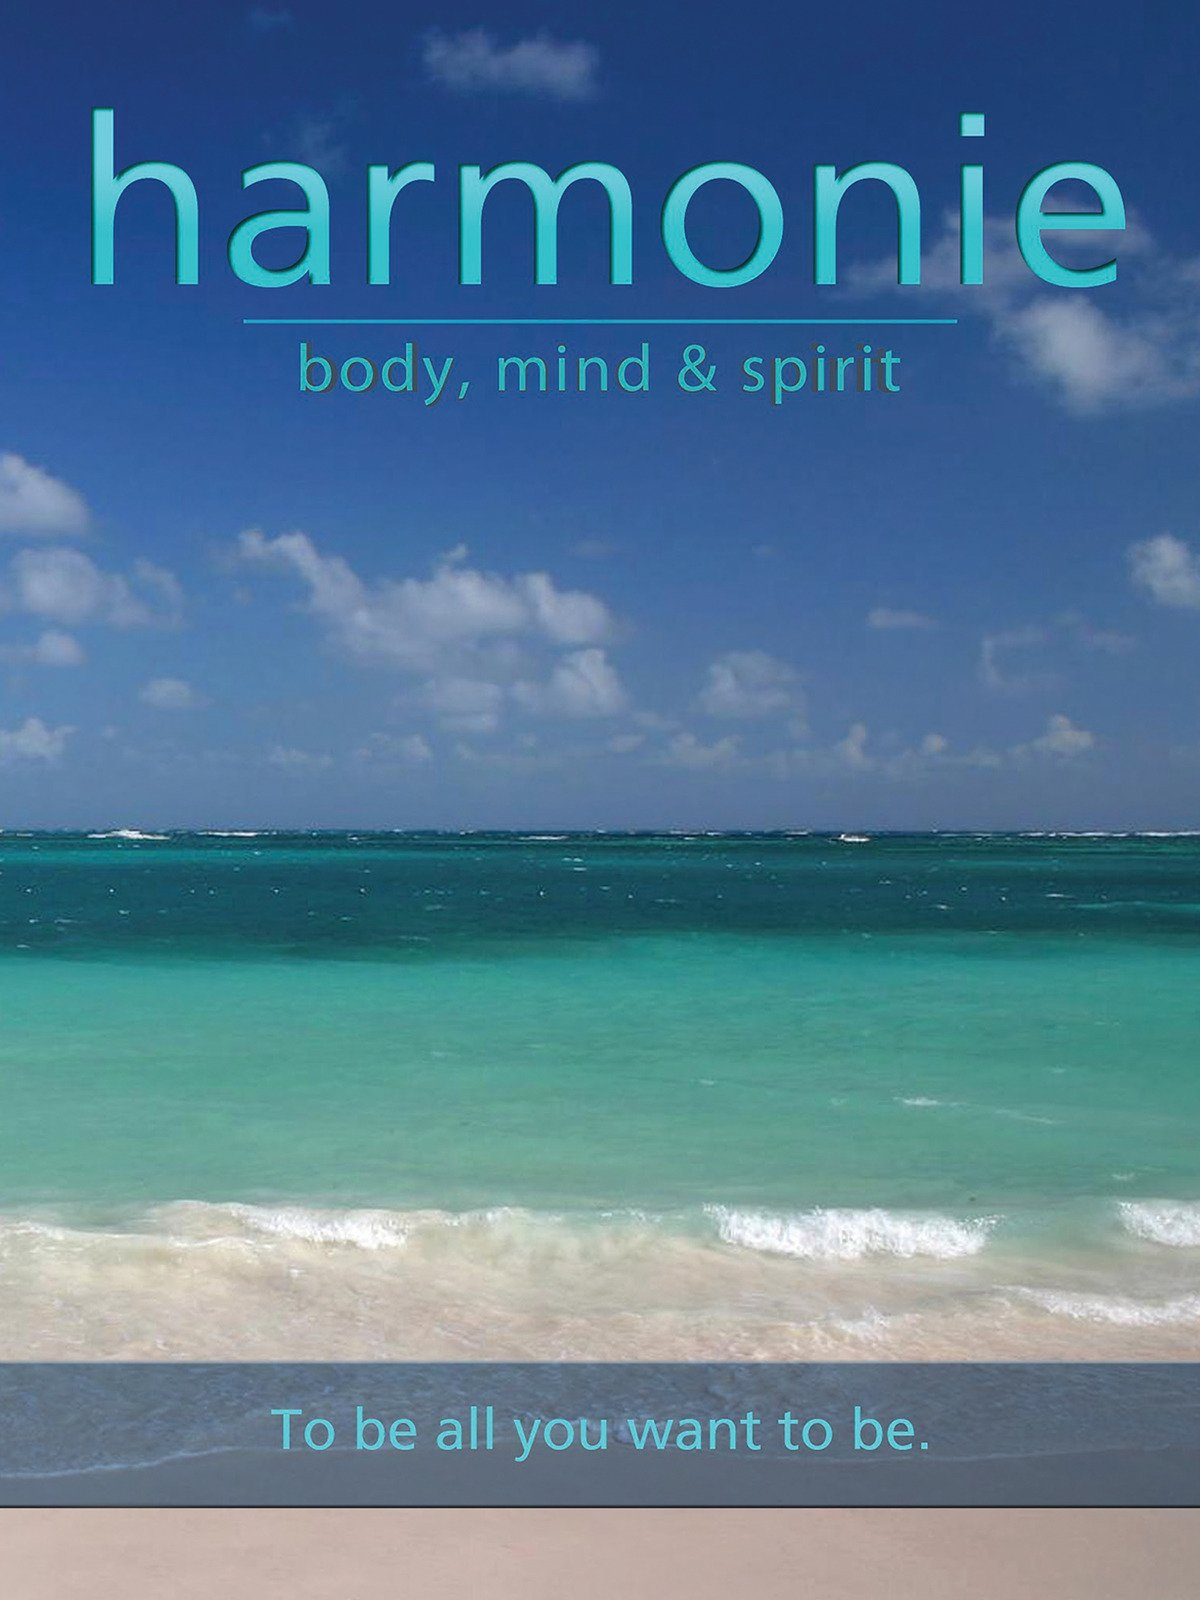 Harmonie: Body, Mind & Spirit